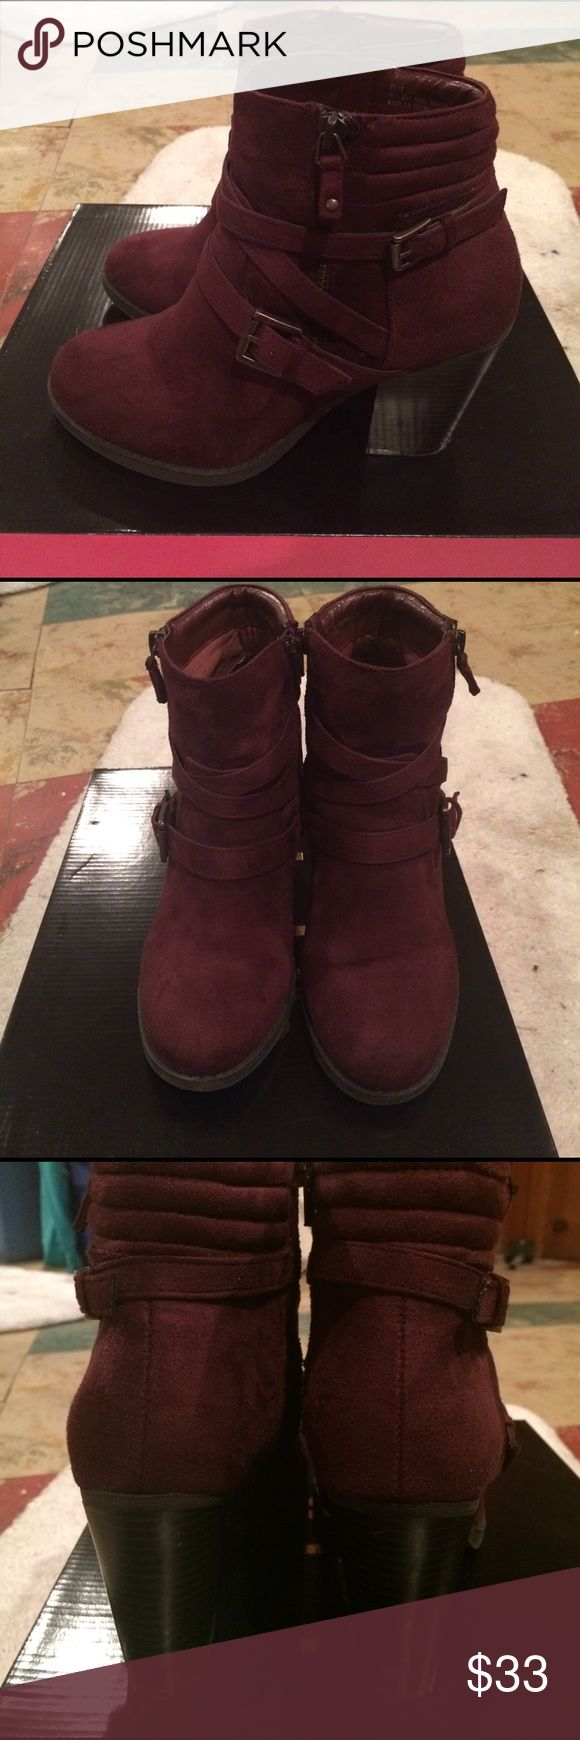 Chunky ankle boots Burgundy chunky ankle boots. Style-elle. Worn once. Excellent condition. Heel size ~4in Charlotte Russe Shoes Ankle Boots & Booties